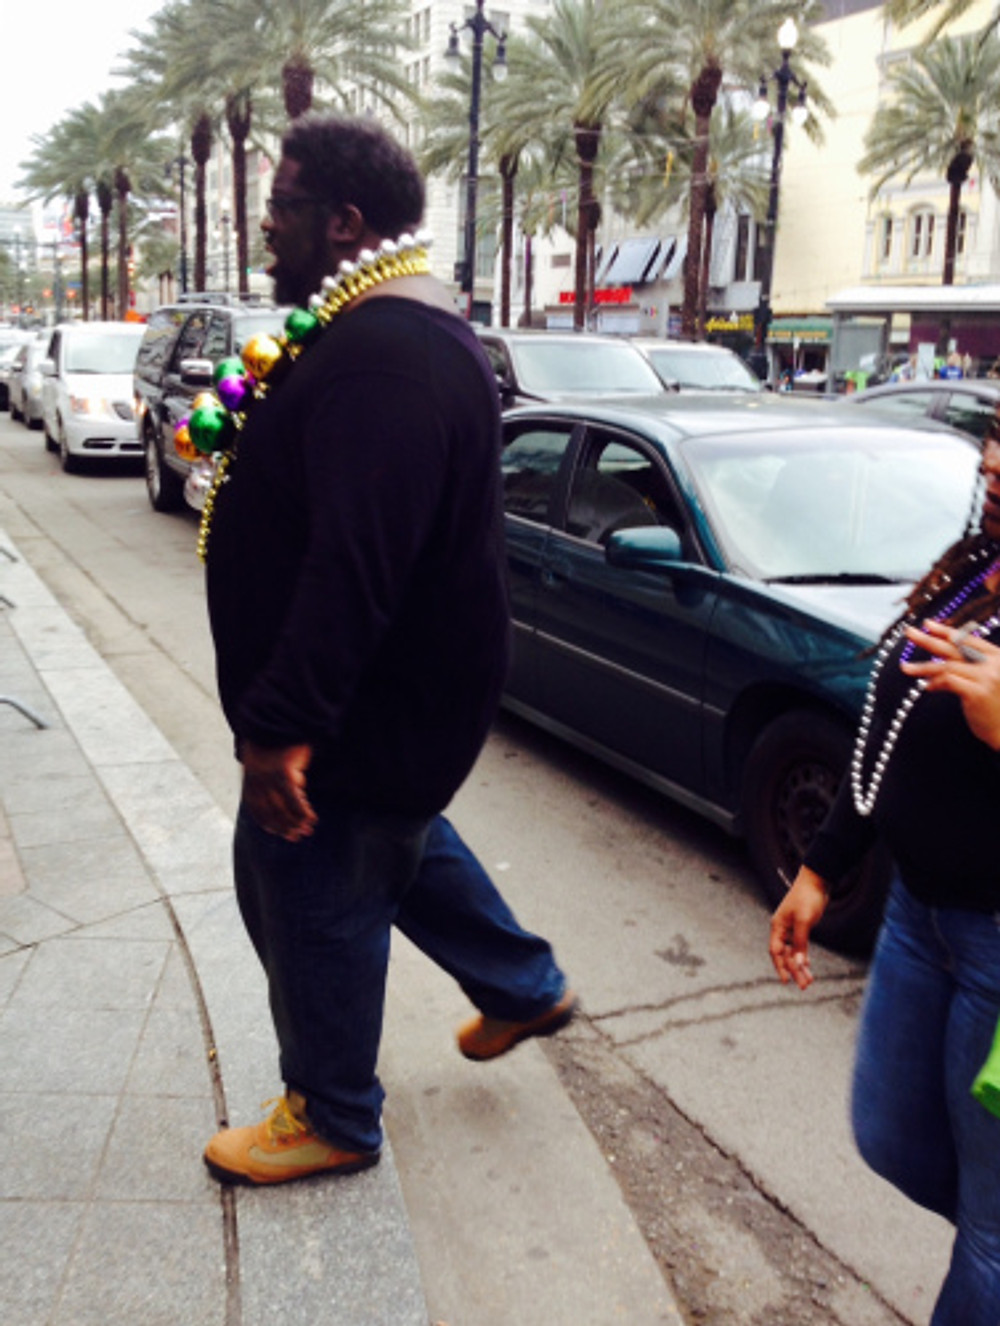 people of nola during mard gras